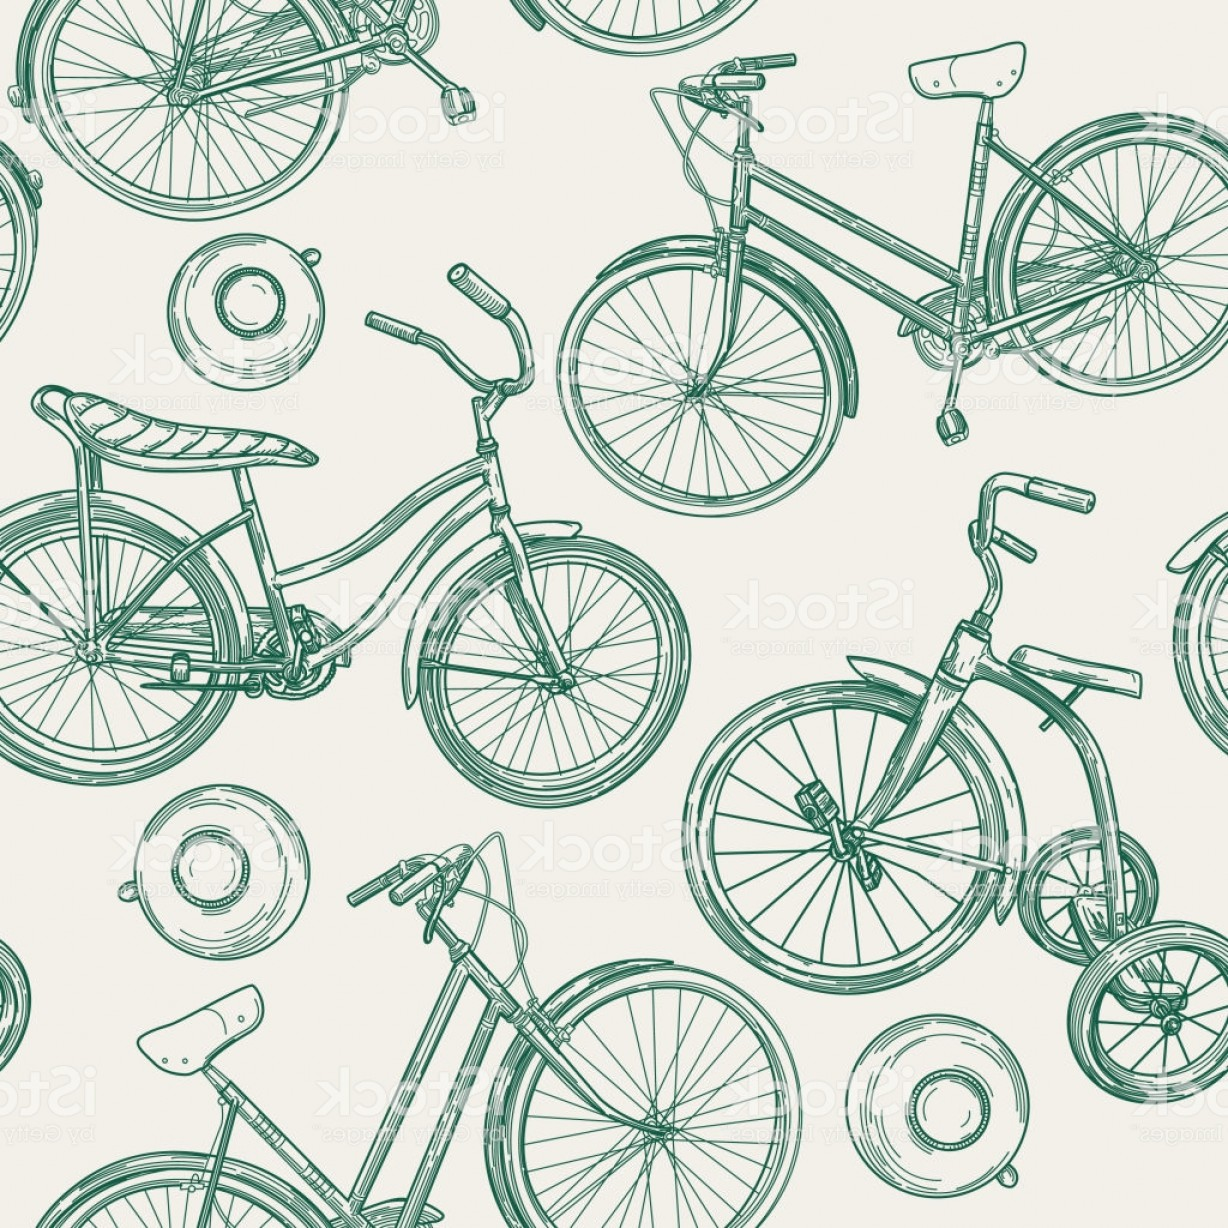 Bicycle Crank Vector Of Artwork: Vintage Line Art Bikes And Bells Seamless Pattern Gm